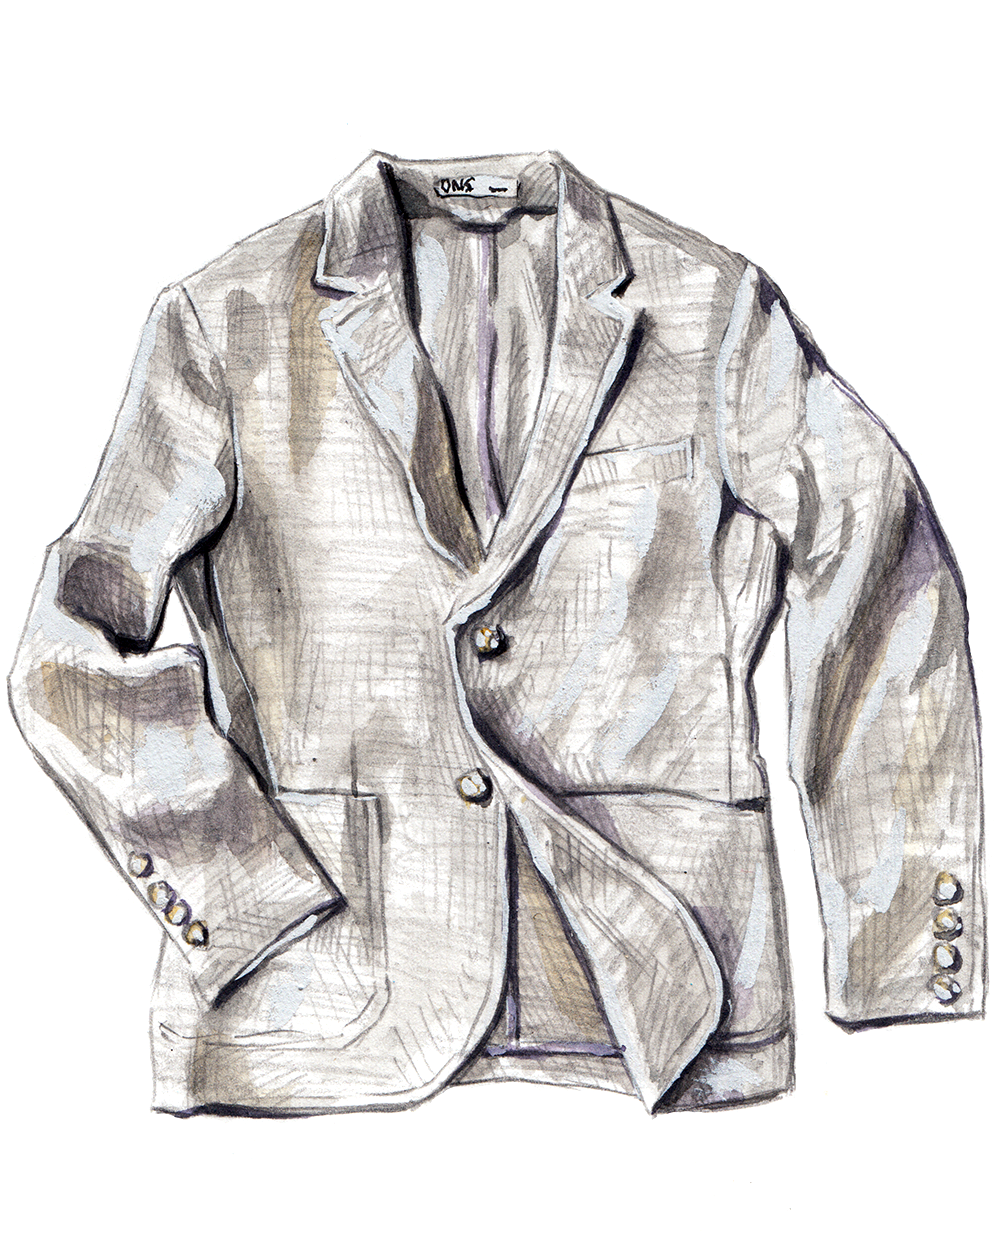 ONS Clothing linen jacket grey